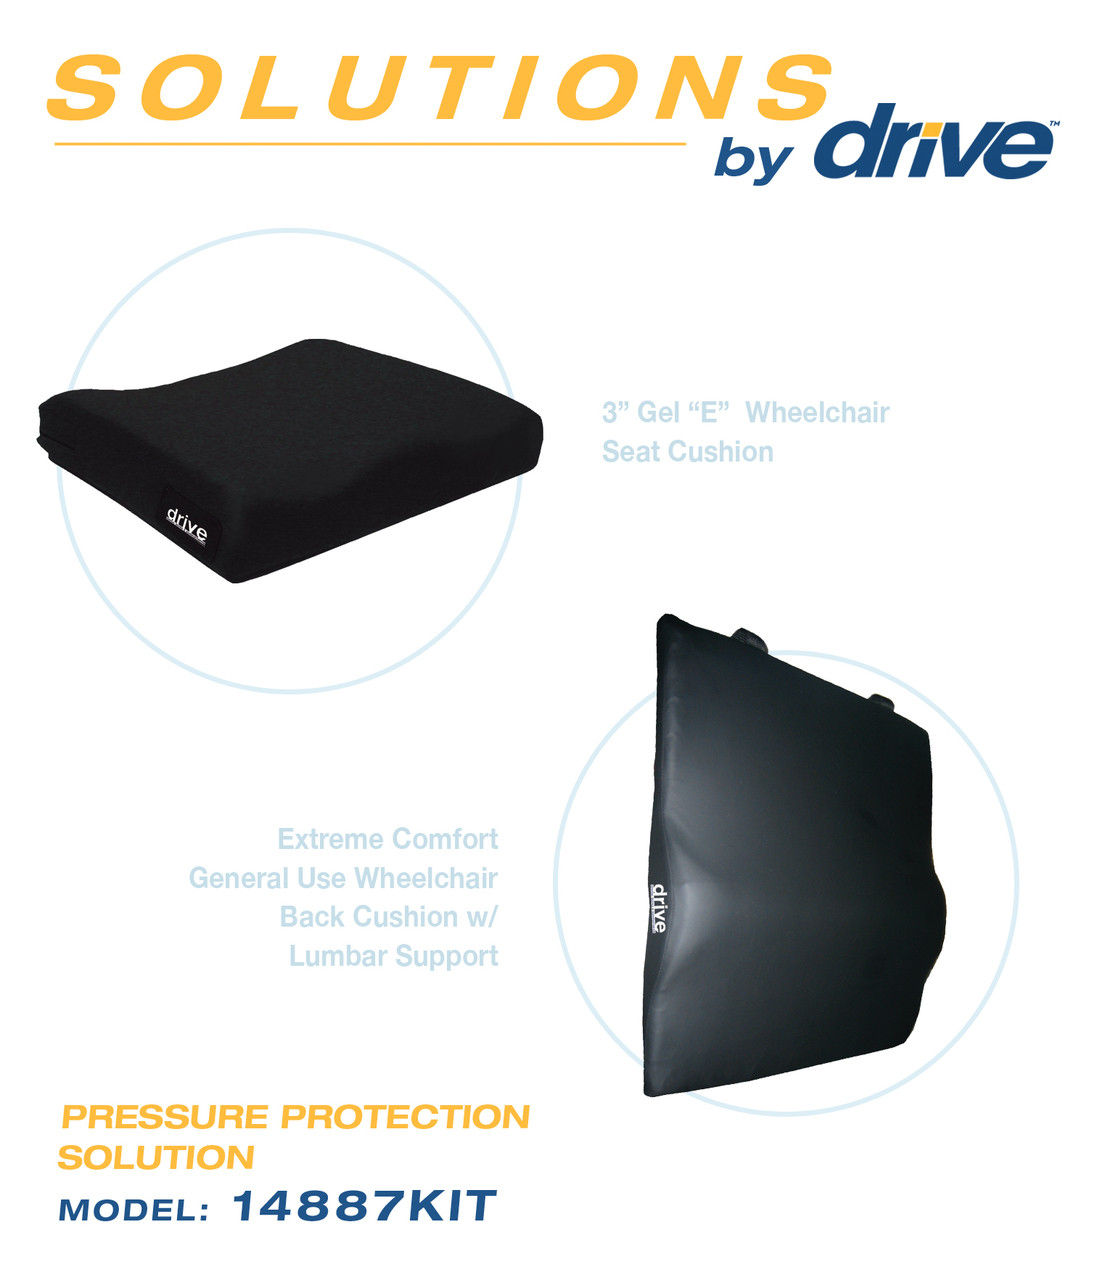 Drive Foam Wheelchair Back and Seat Cushion Bundle